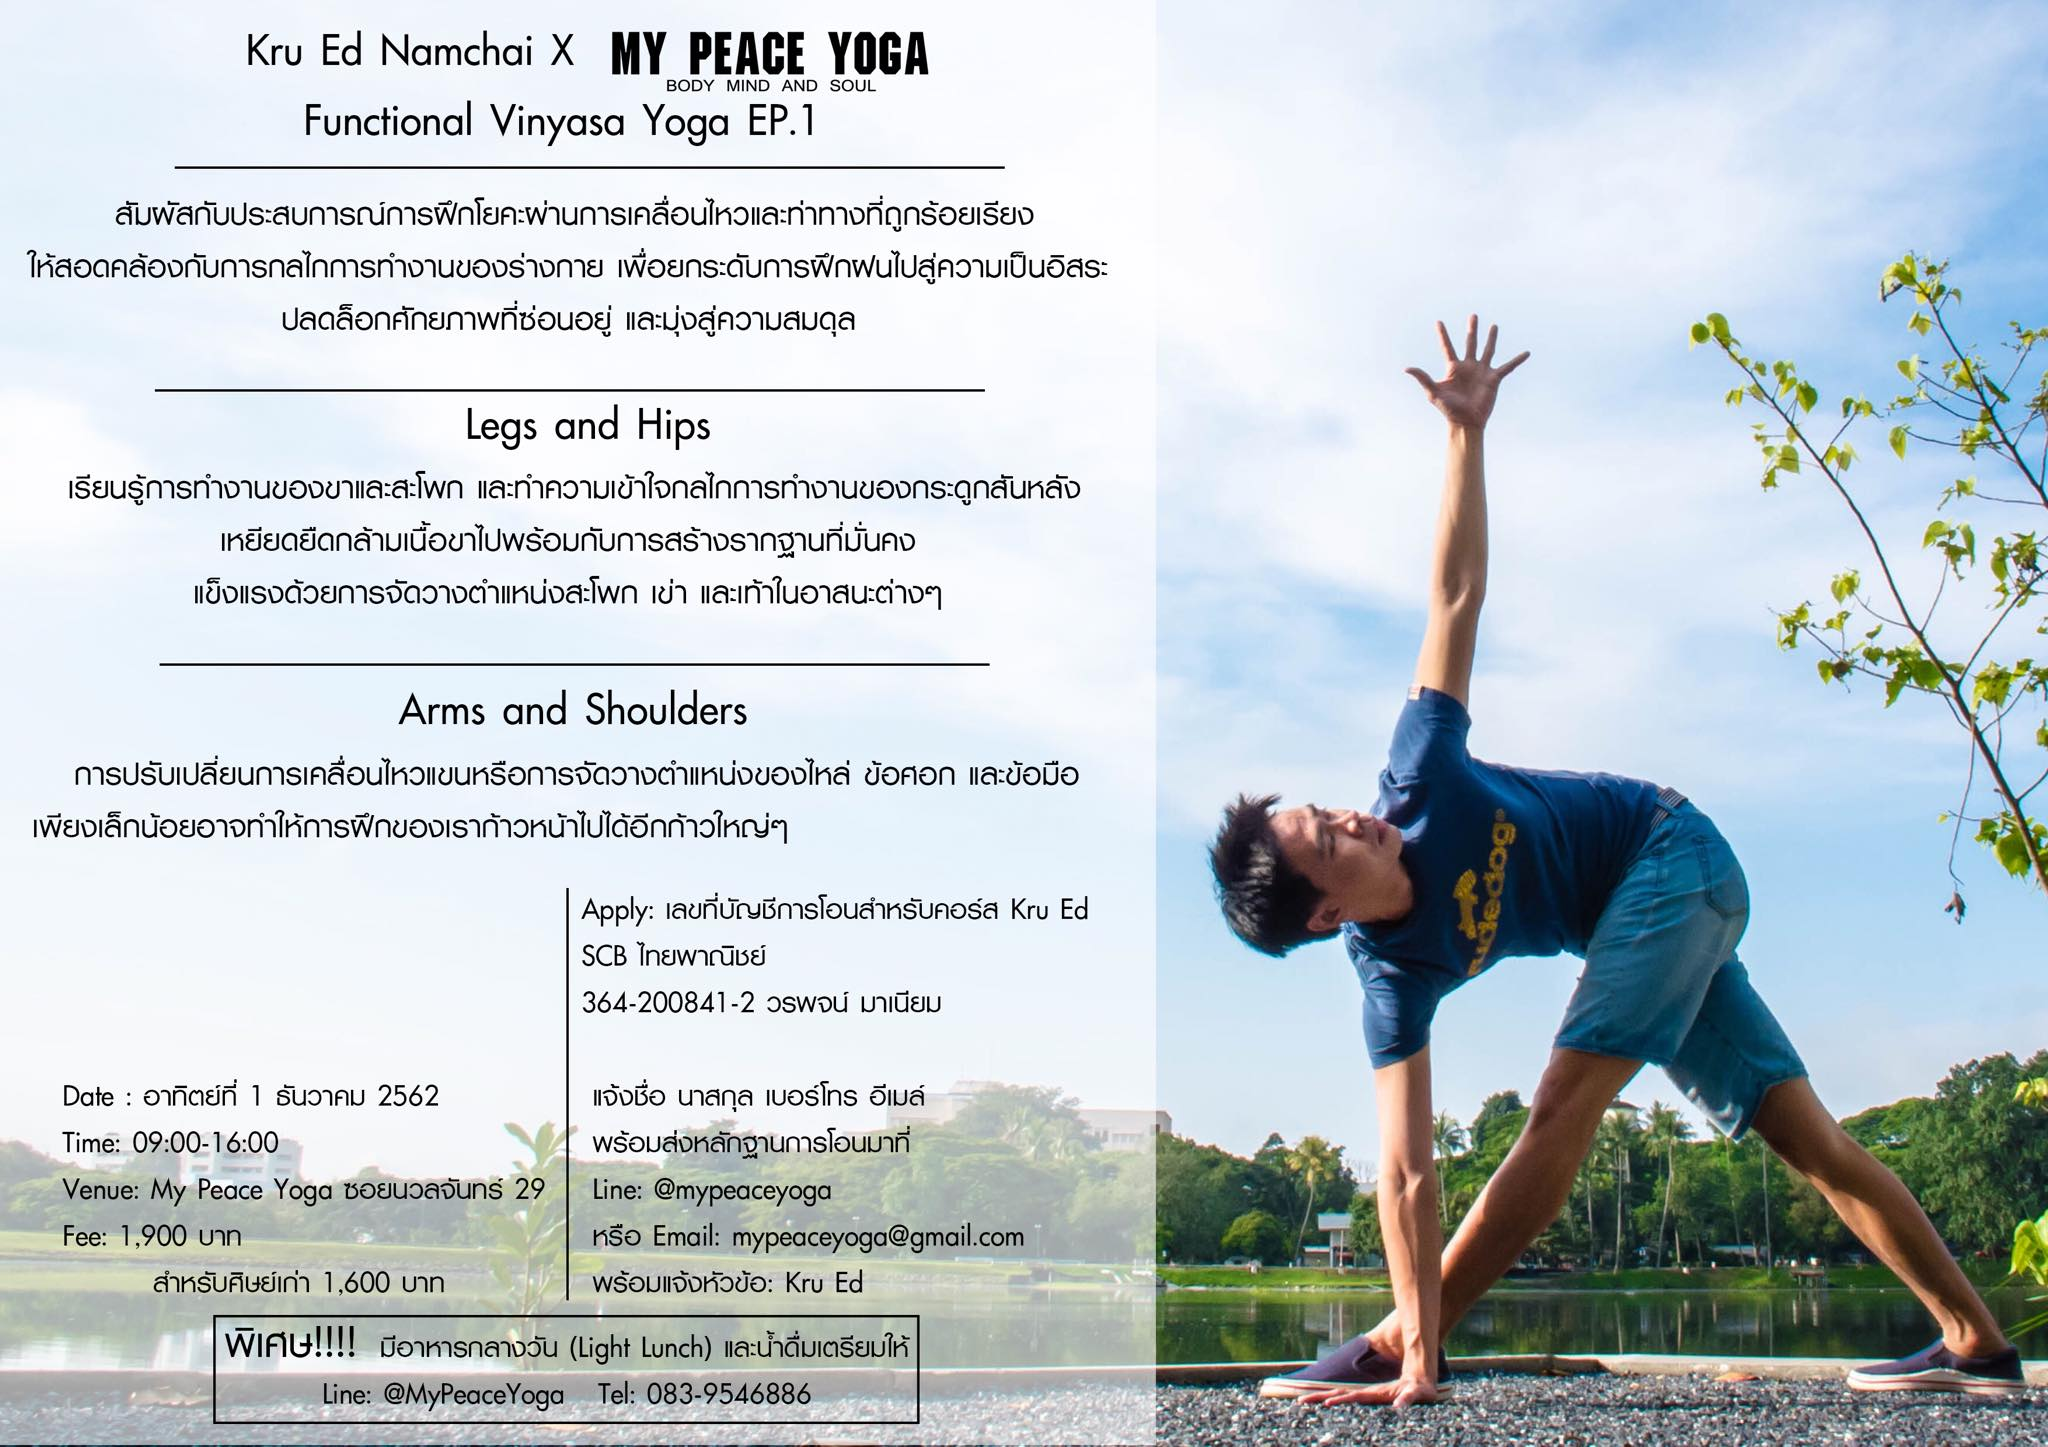 Functional Vinyasa - My Peace Yoga